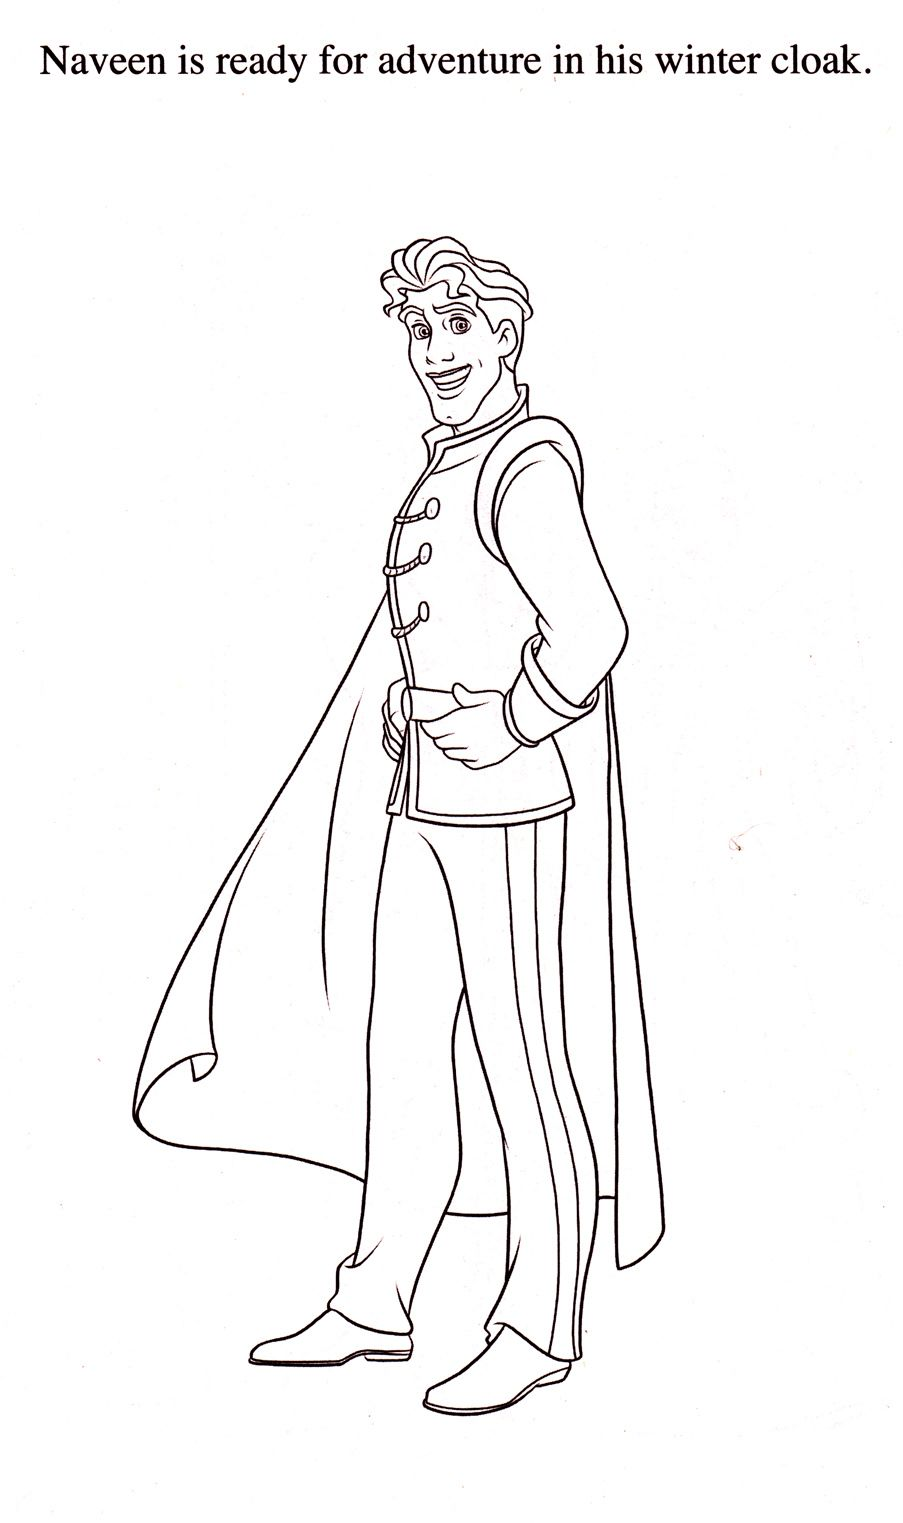 Disney Coloring Pages Photo Disney Coloring Pages Princess Coloring Pages Descendants Coloring Pages